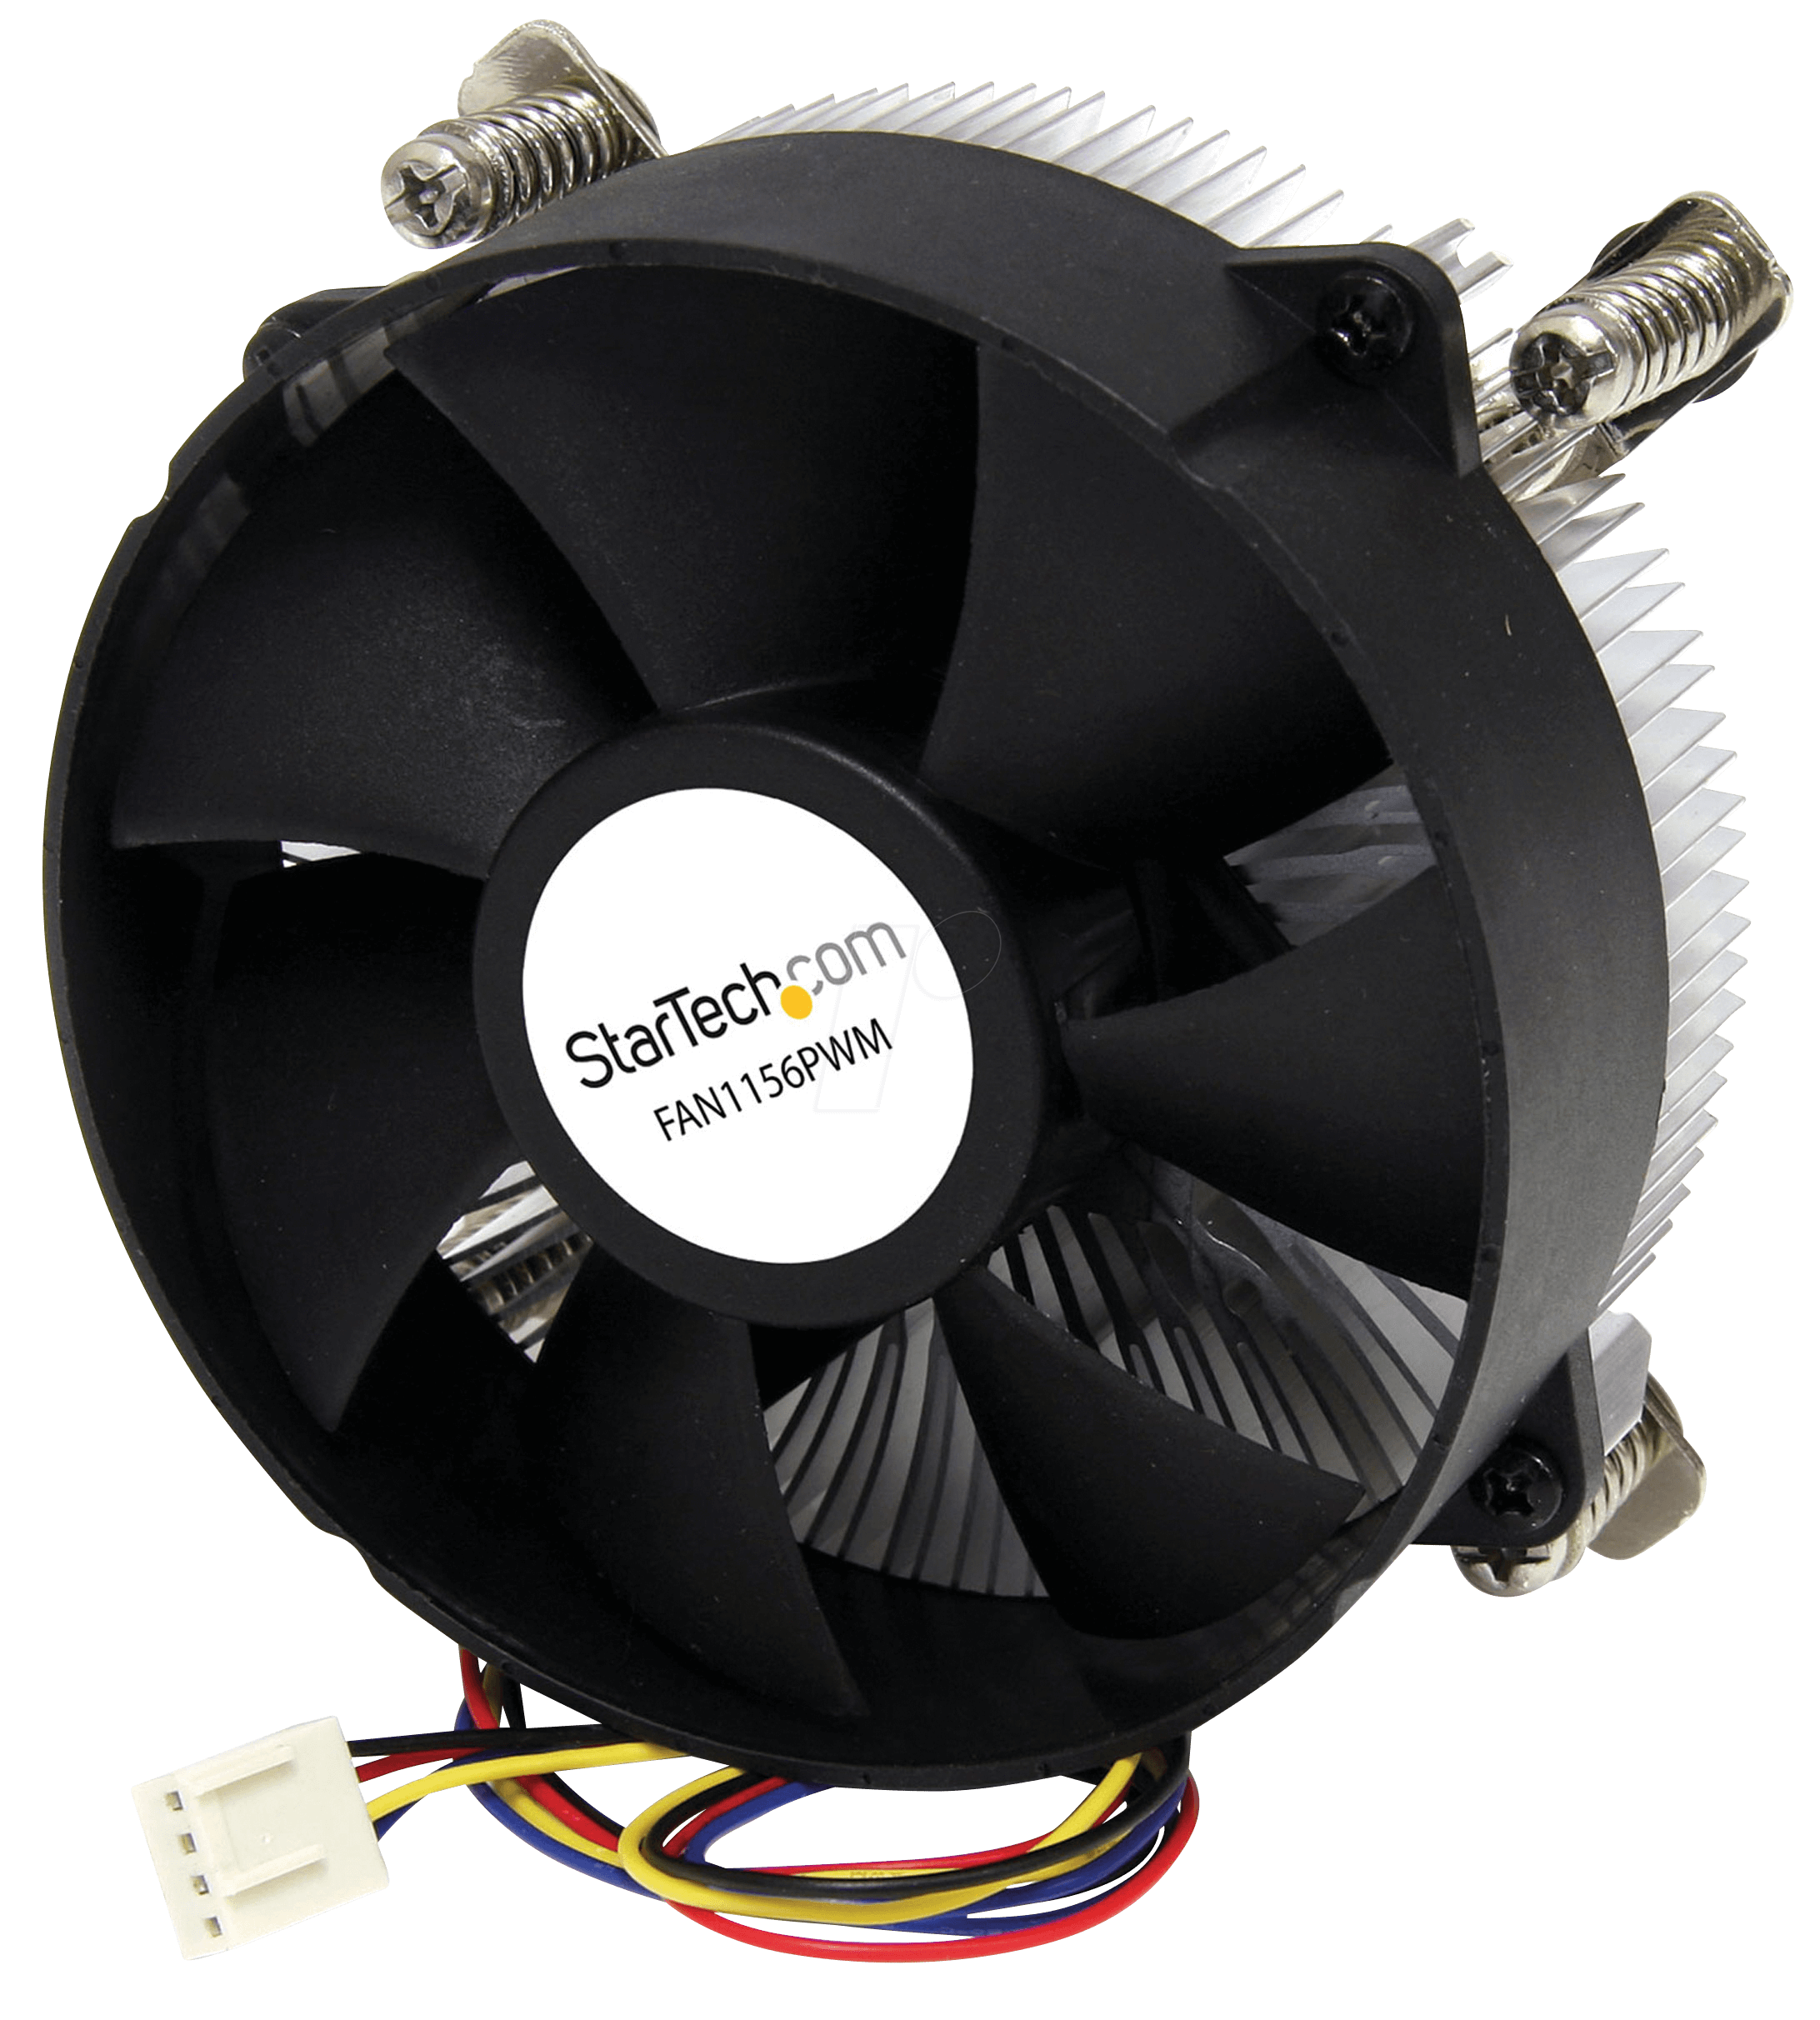 ST FAN1156PWM - 95mm PWM CPU Cooler for LGA1156/1155